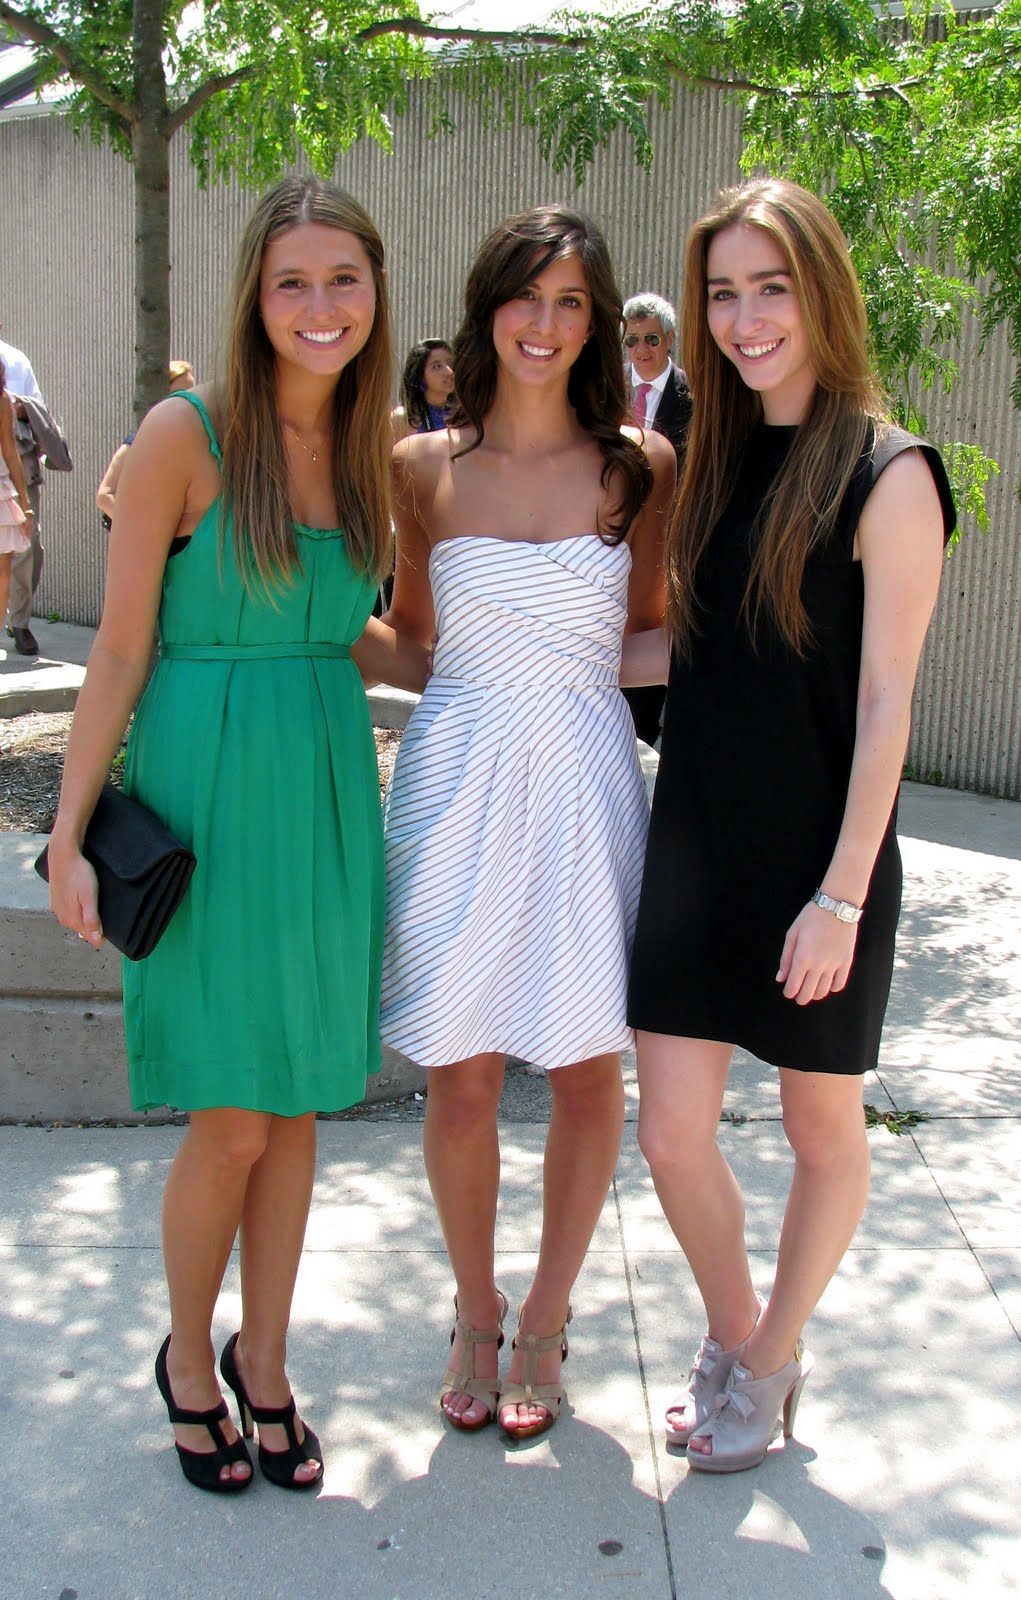 the girls in their summer dresses essay The girls in their summer dresses 3 pages 679 words november 2014 saved essays save your essays here so you can locate them quickly.